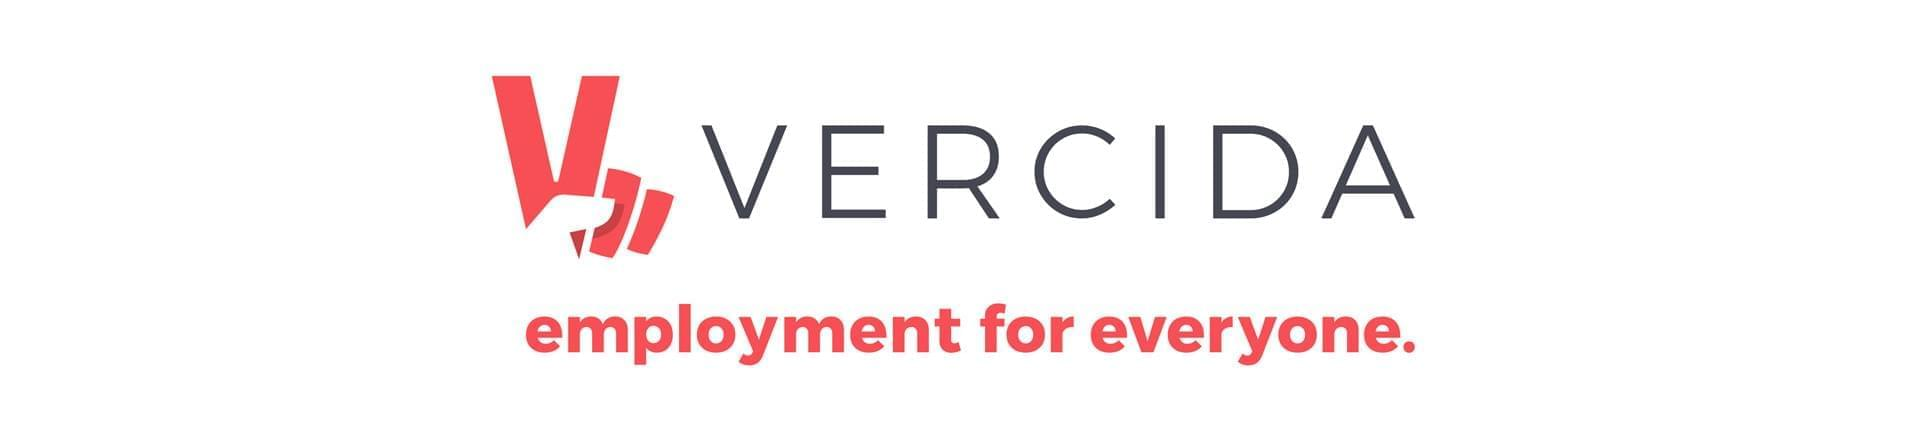 the VERCIDA logo with the text 'employment for everyone'